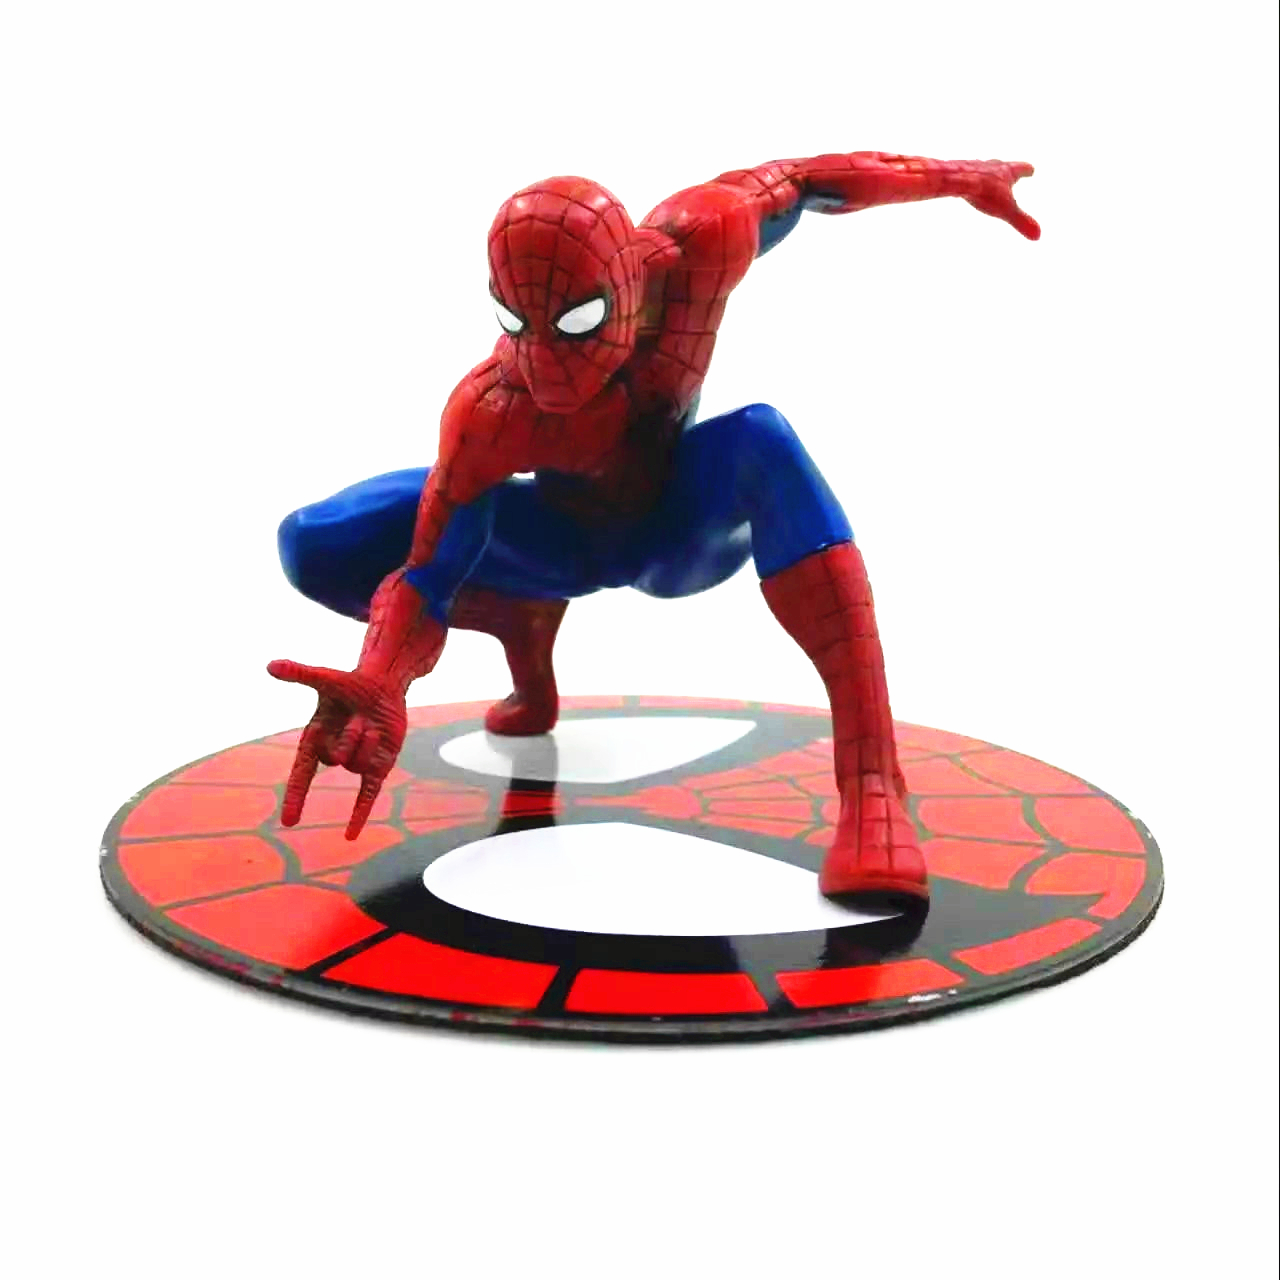 Marvel Anime The Avengers ARTFX + Spider-Man Base Contains Magnets Model Can Climb Any Area With Iron For Kids Gift